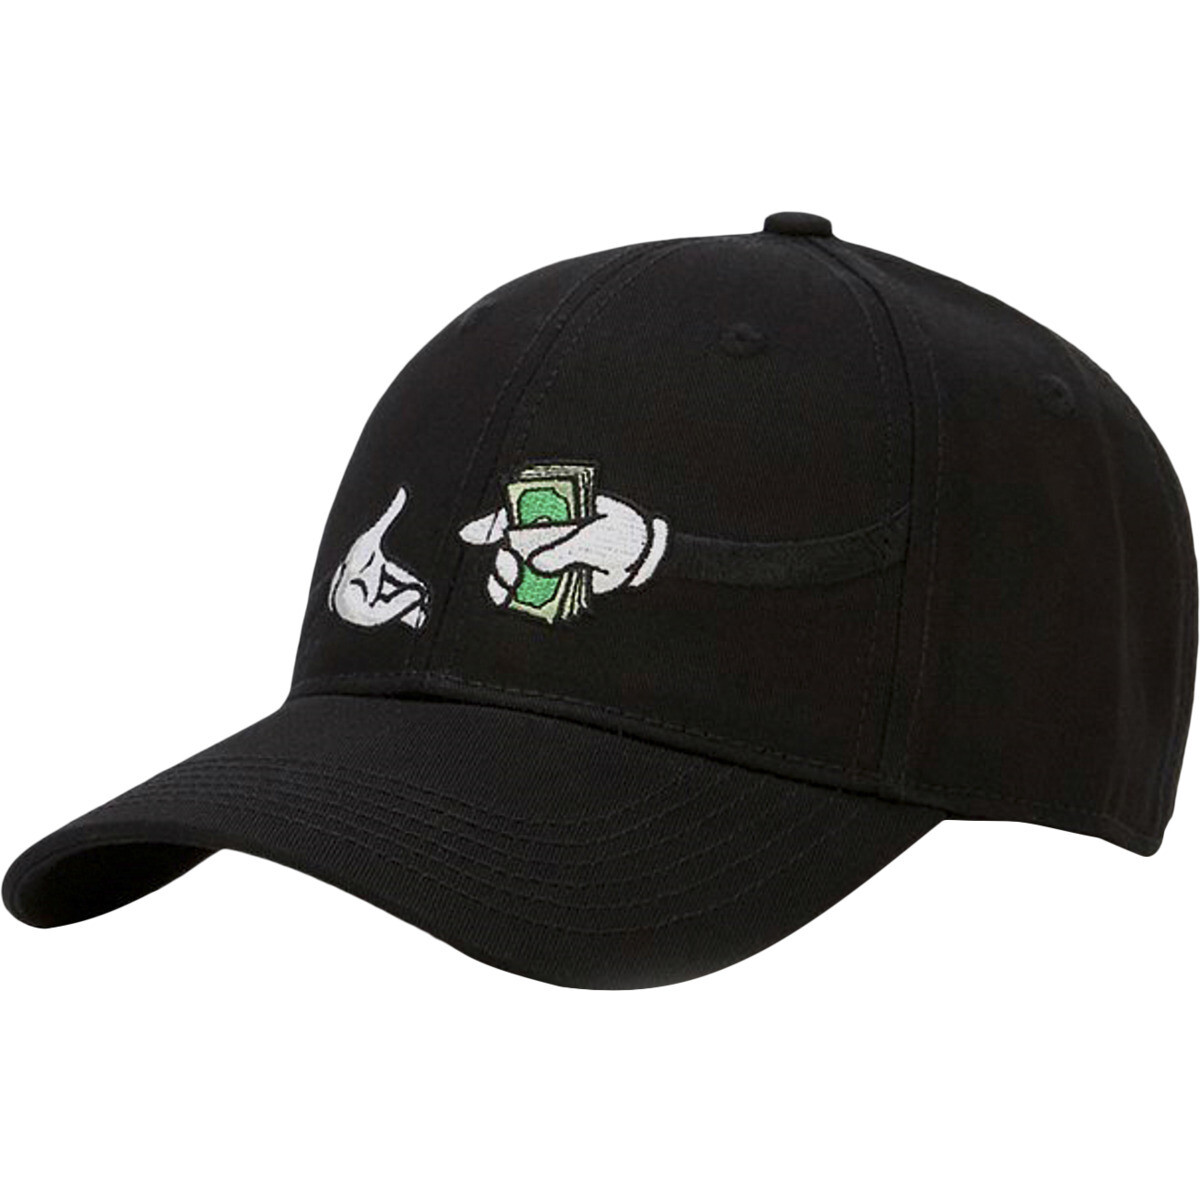 C&S WL God Given Curved Cap